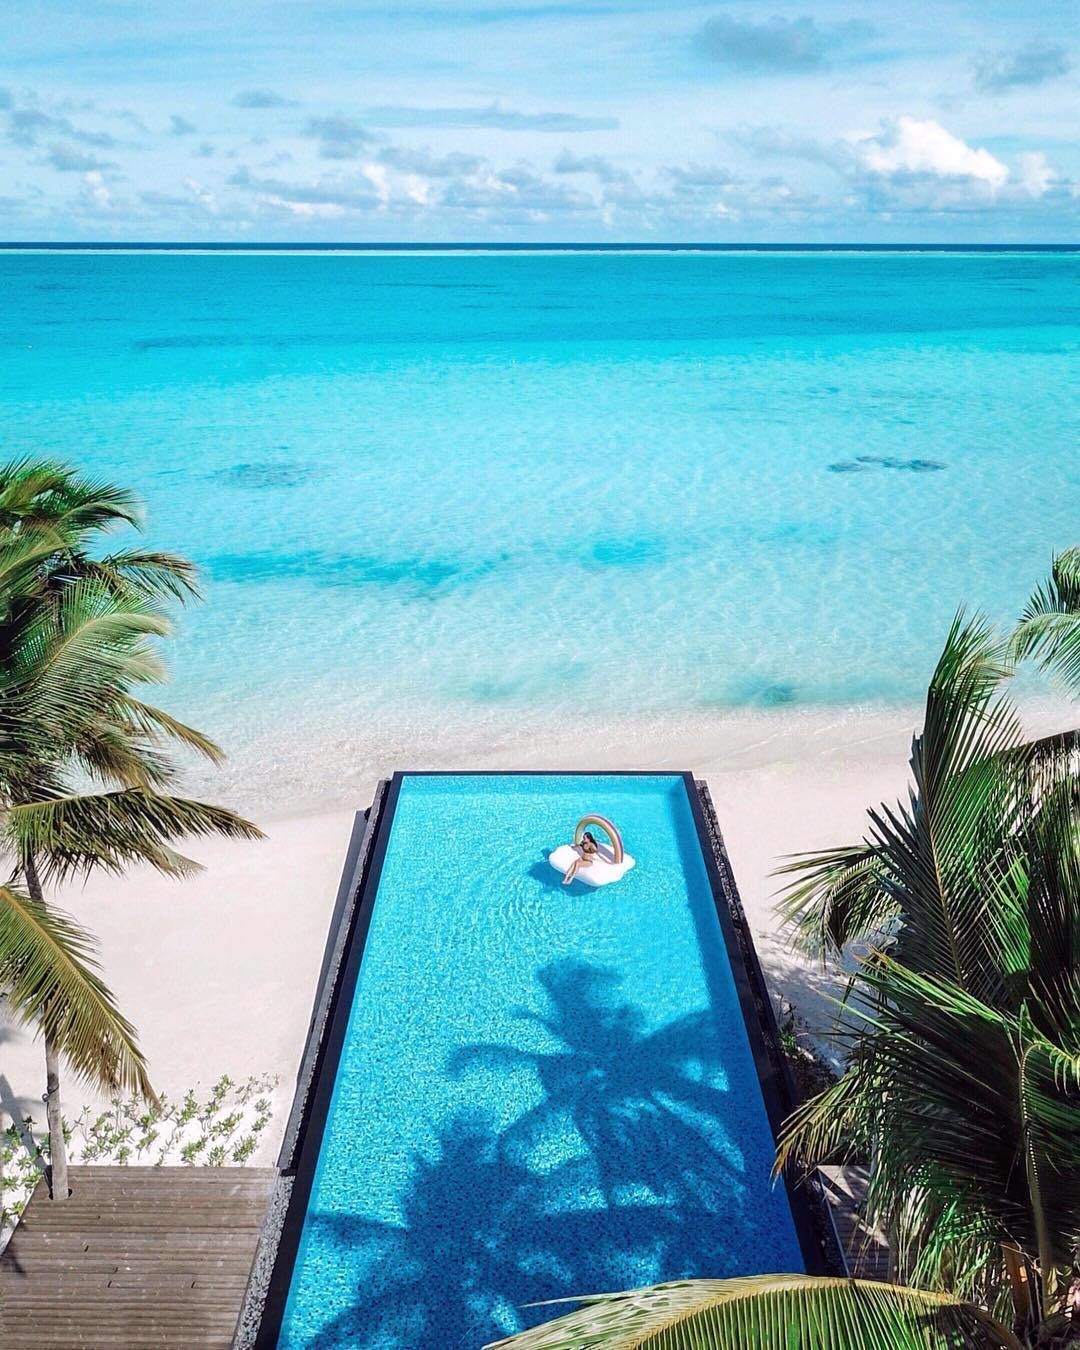 The Maldives The Smallest Asian Country In Land Mass And Population Is Filled With Tropical Islands Pristine Tropical Islands Maldives Travel Maldives Beach